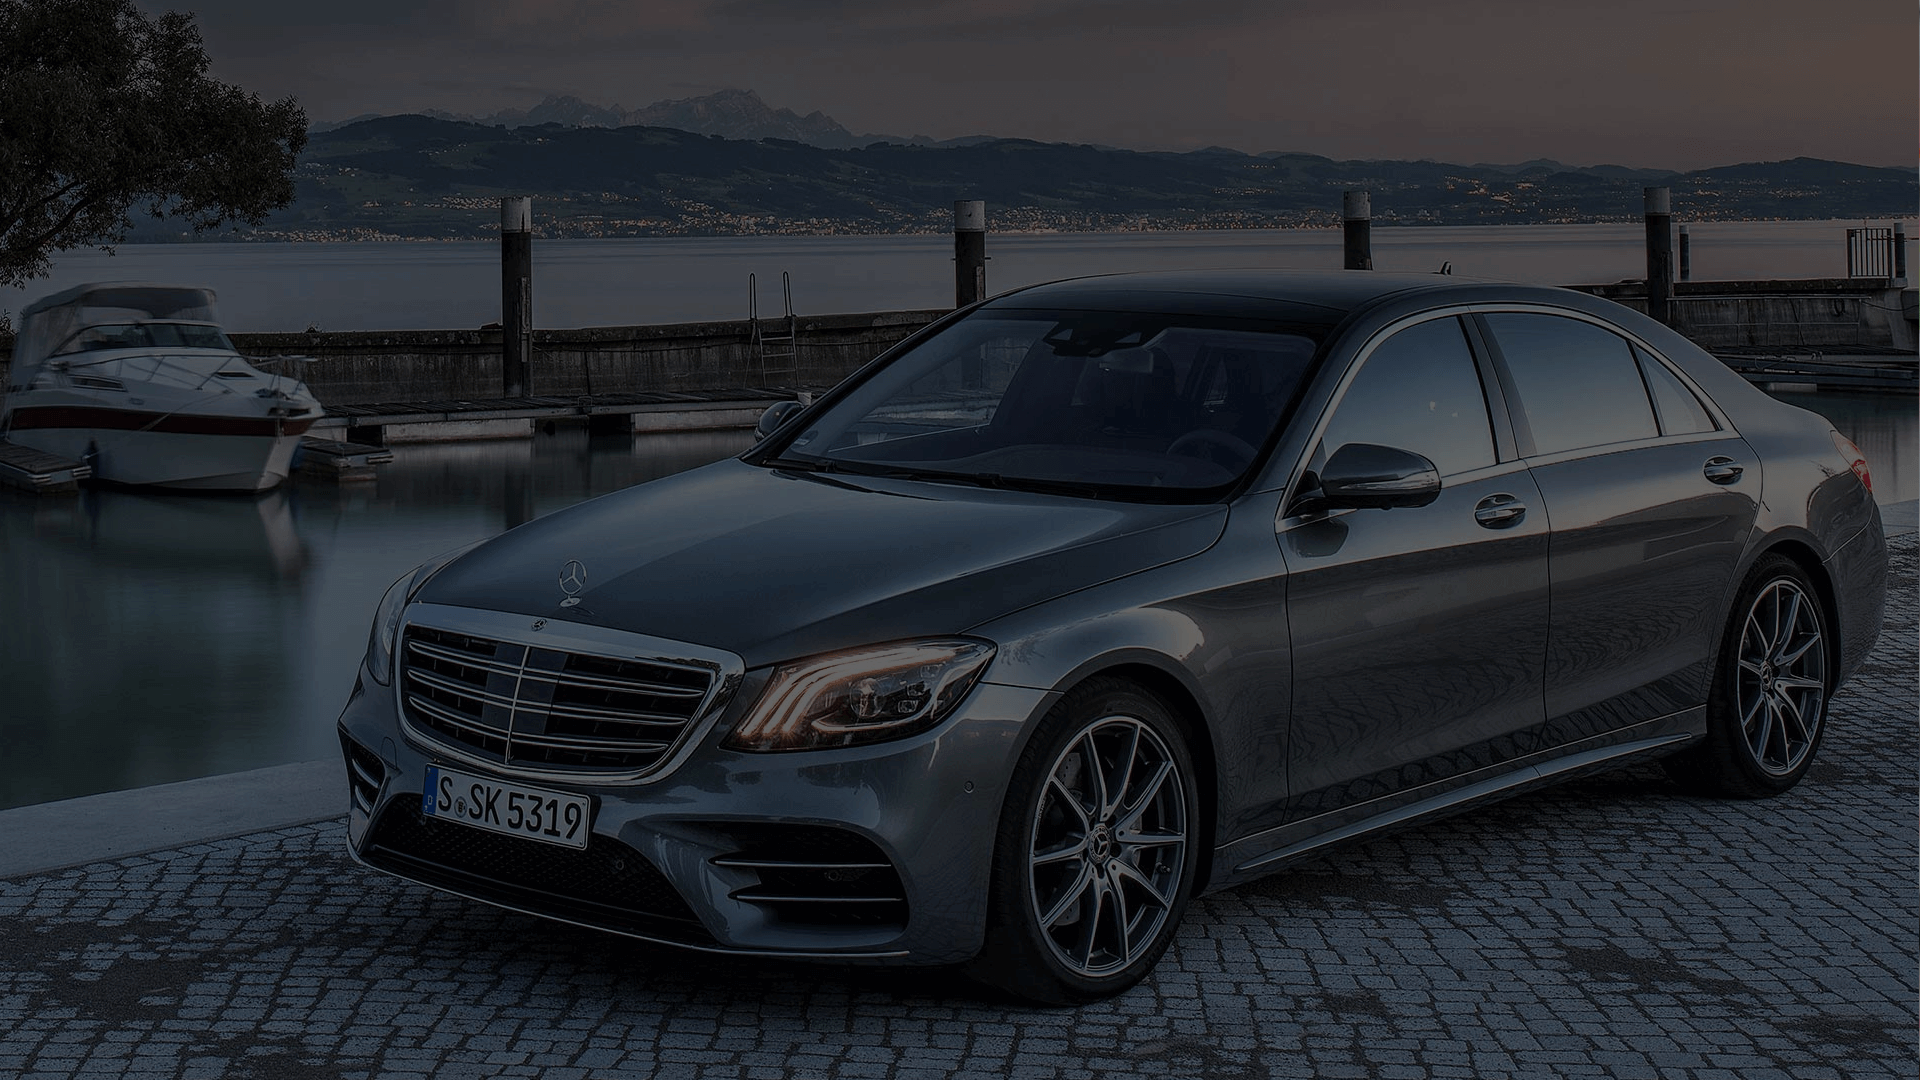 Authorized Distributor for Mercedes-Benz in Abu Dhabi